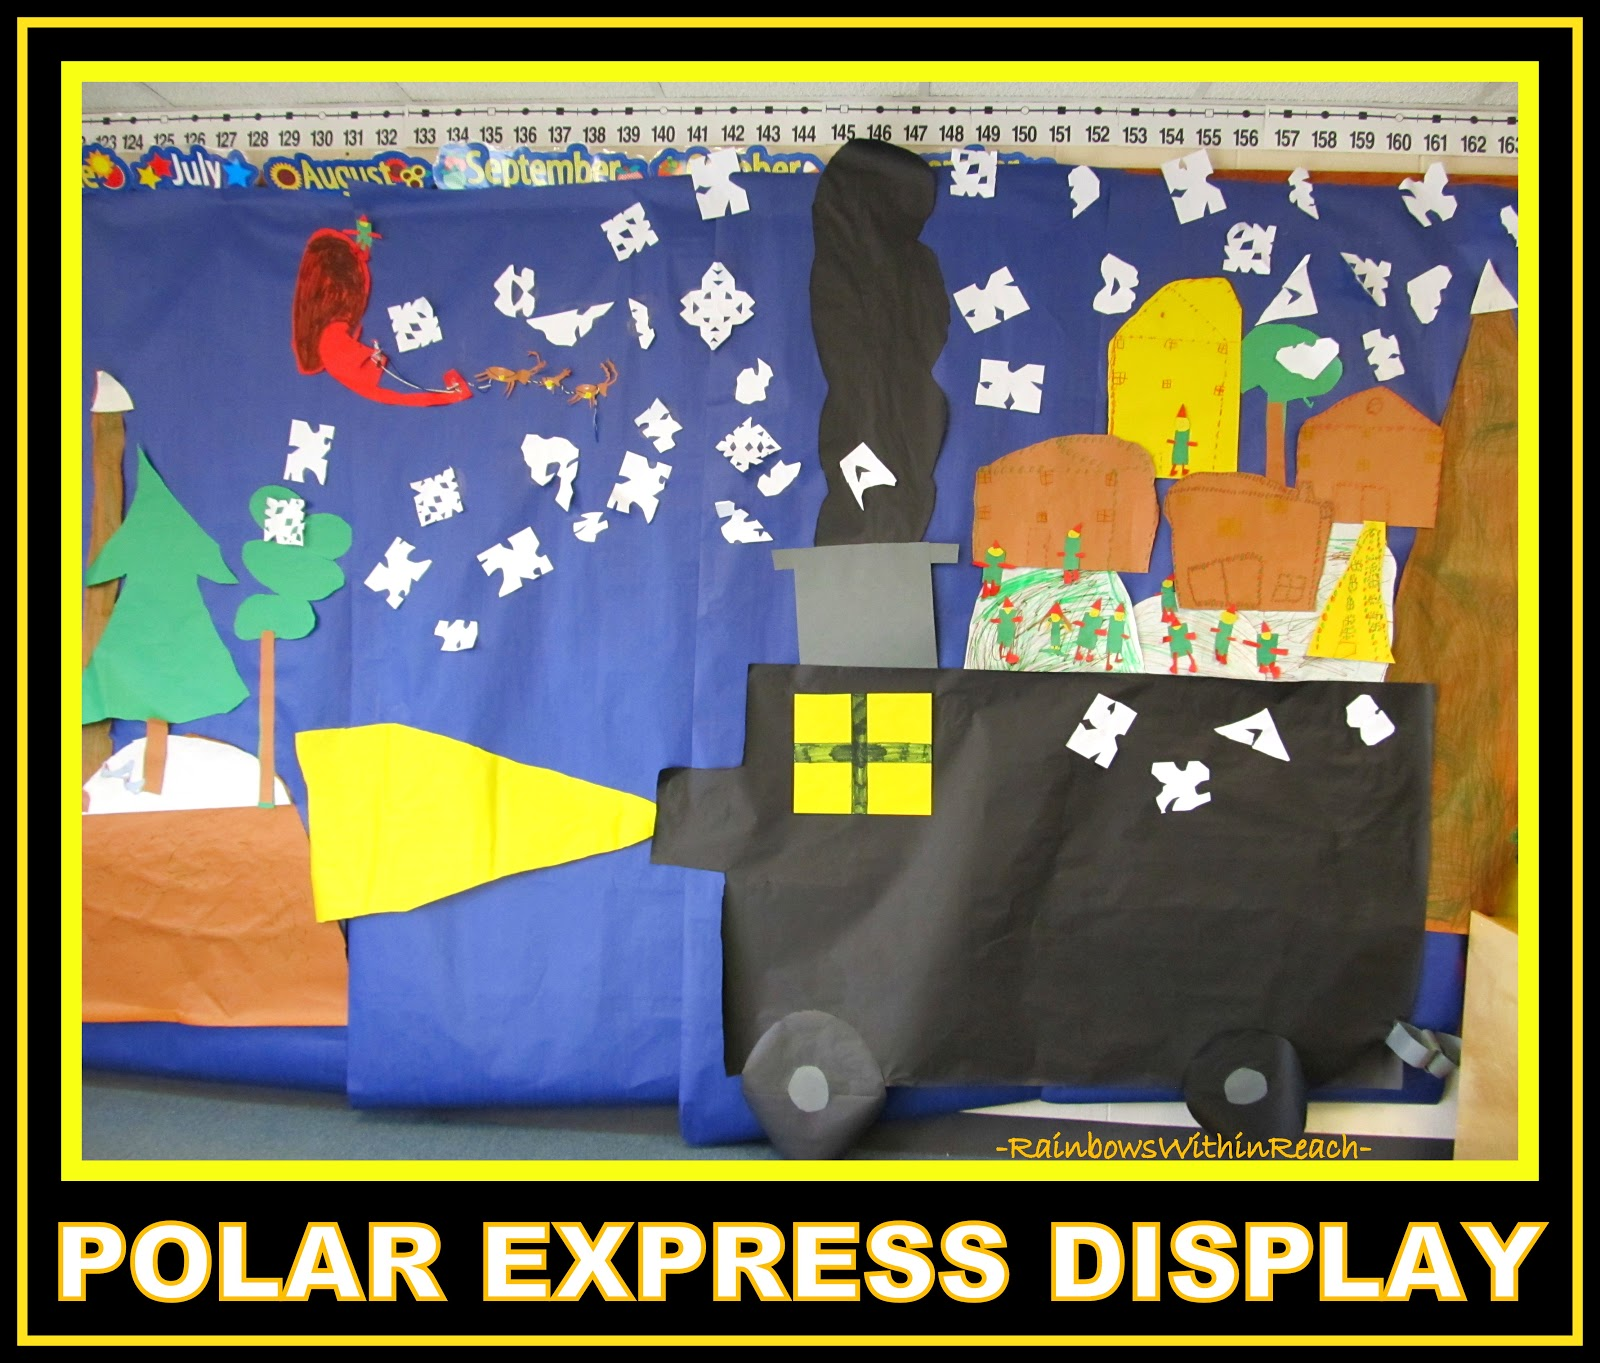 Ideas For Display Boards : Rainbowswithinreach spot